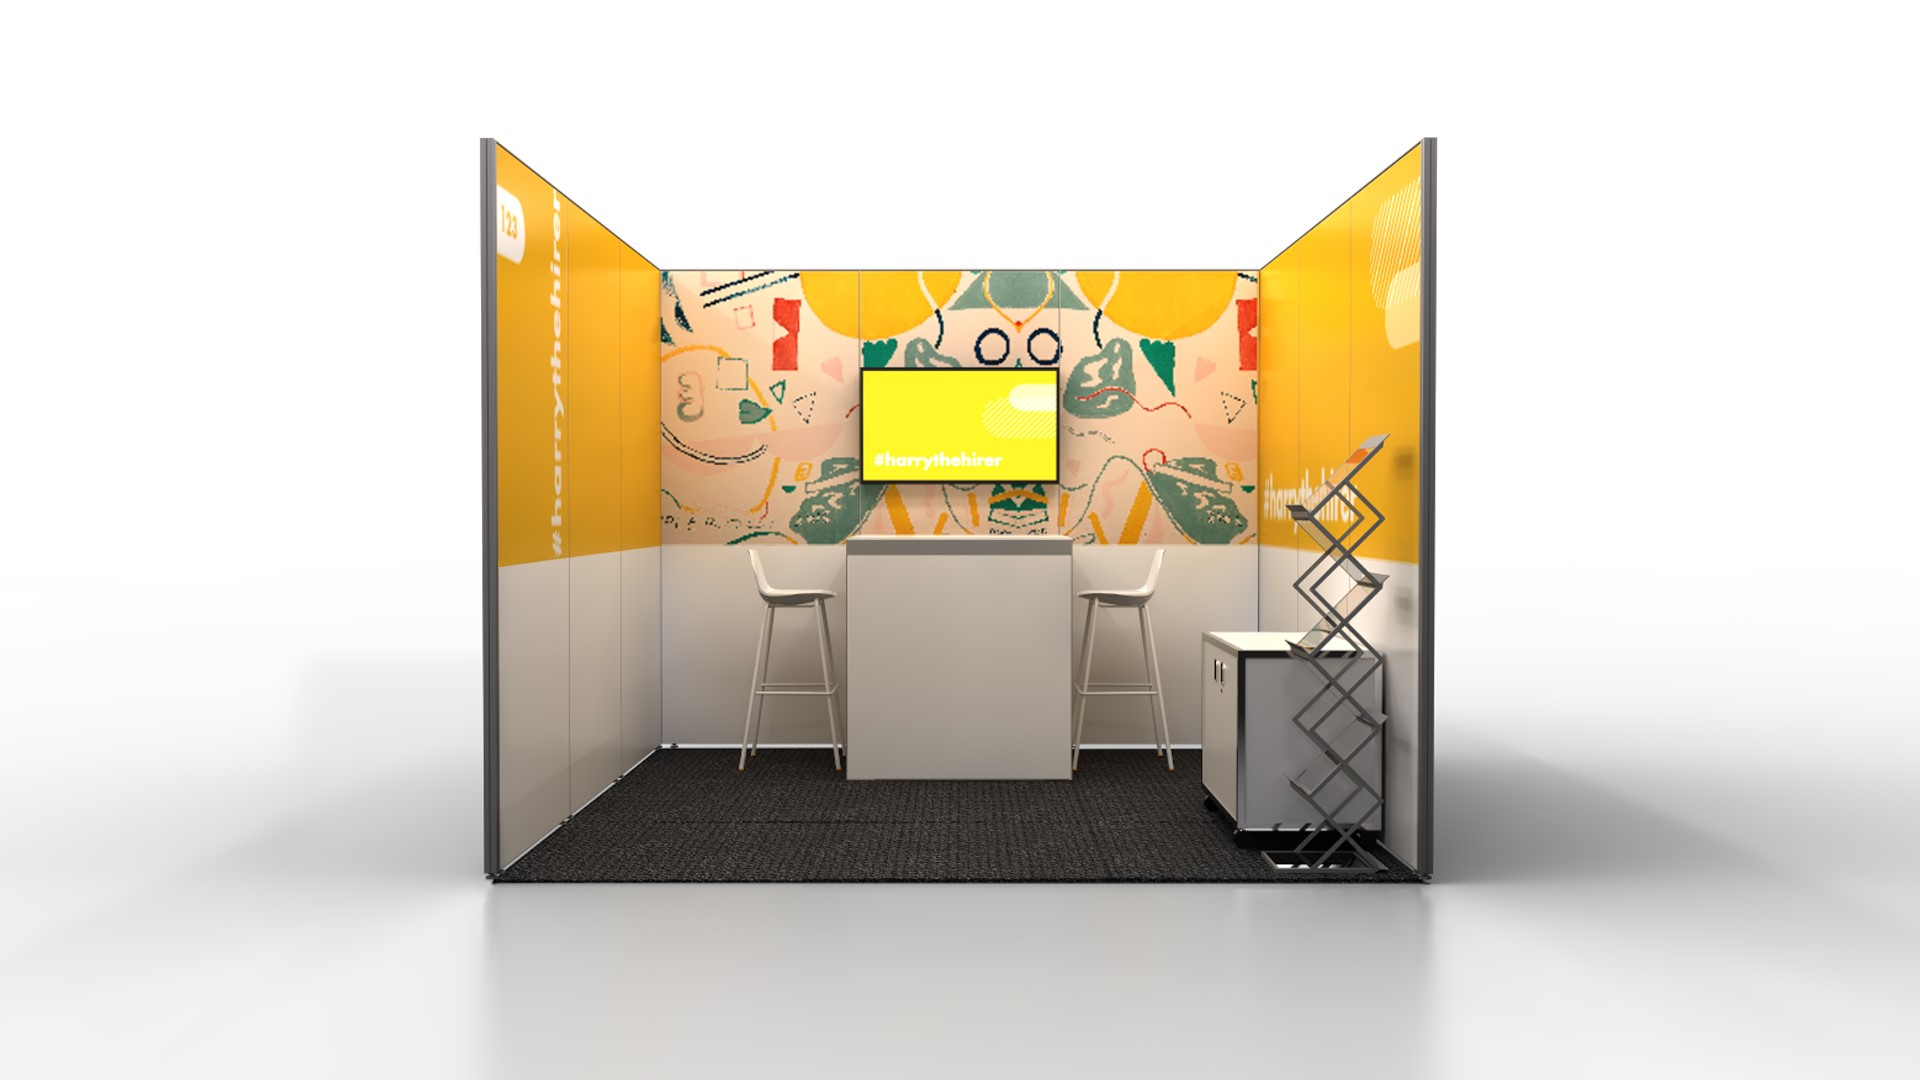 3m  x  3m  Stand